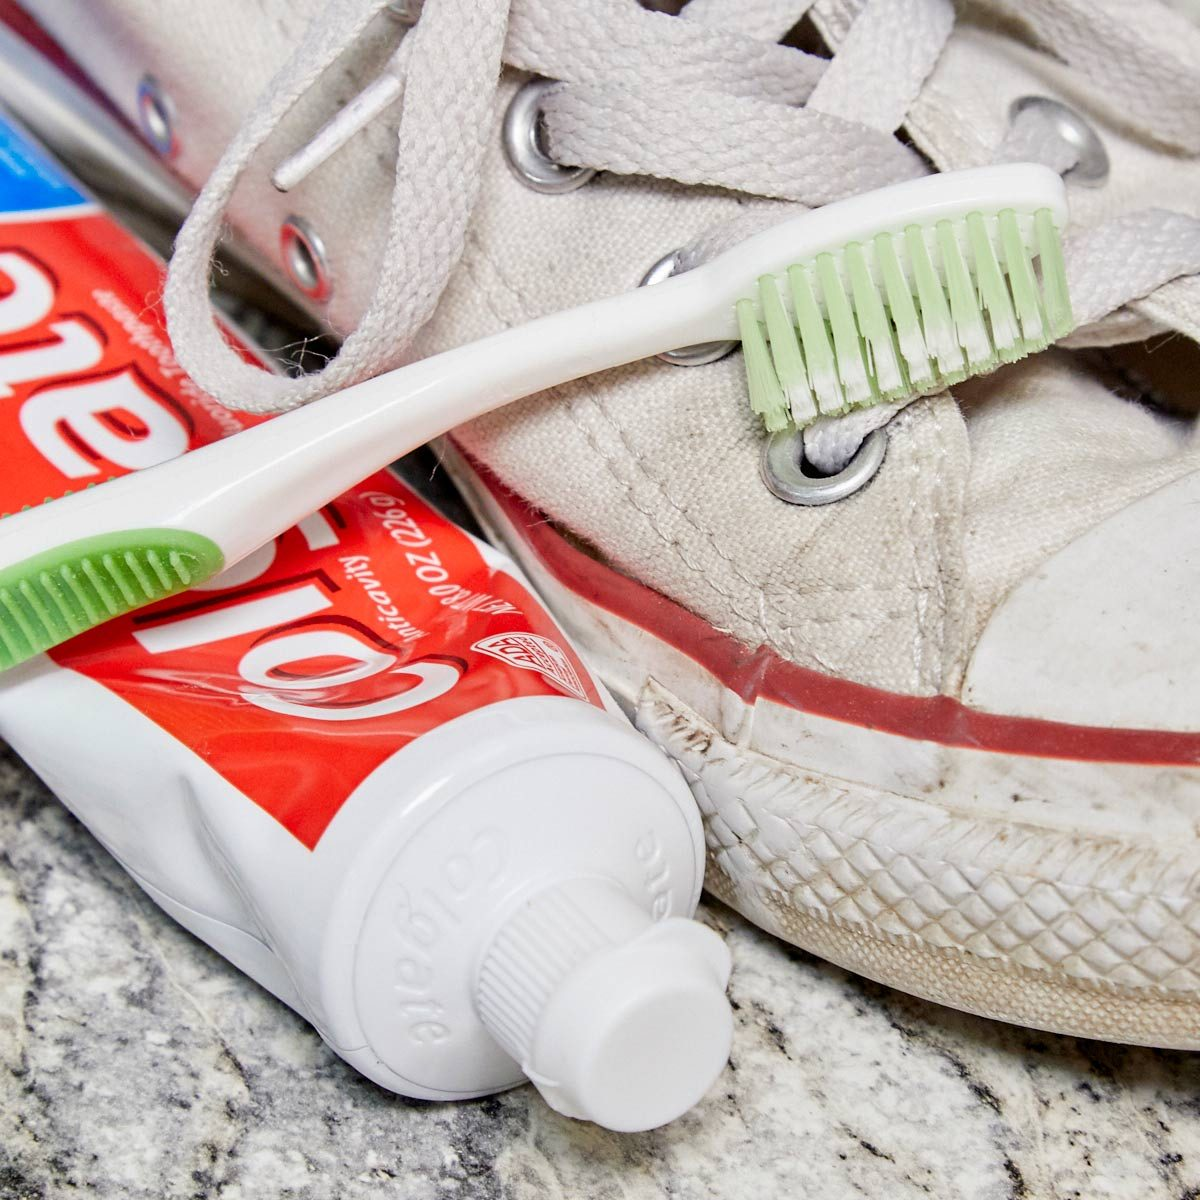 Use Toothpaste To Clean Sneakers The Family Handyman